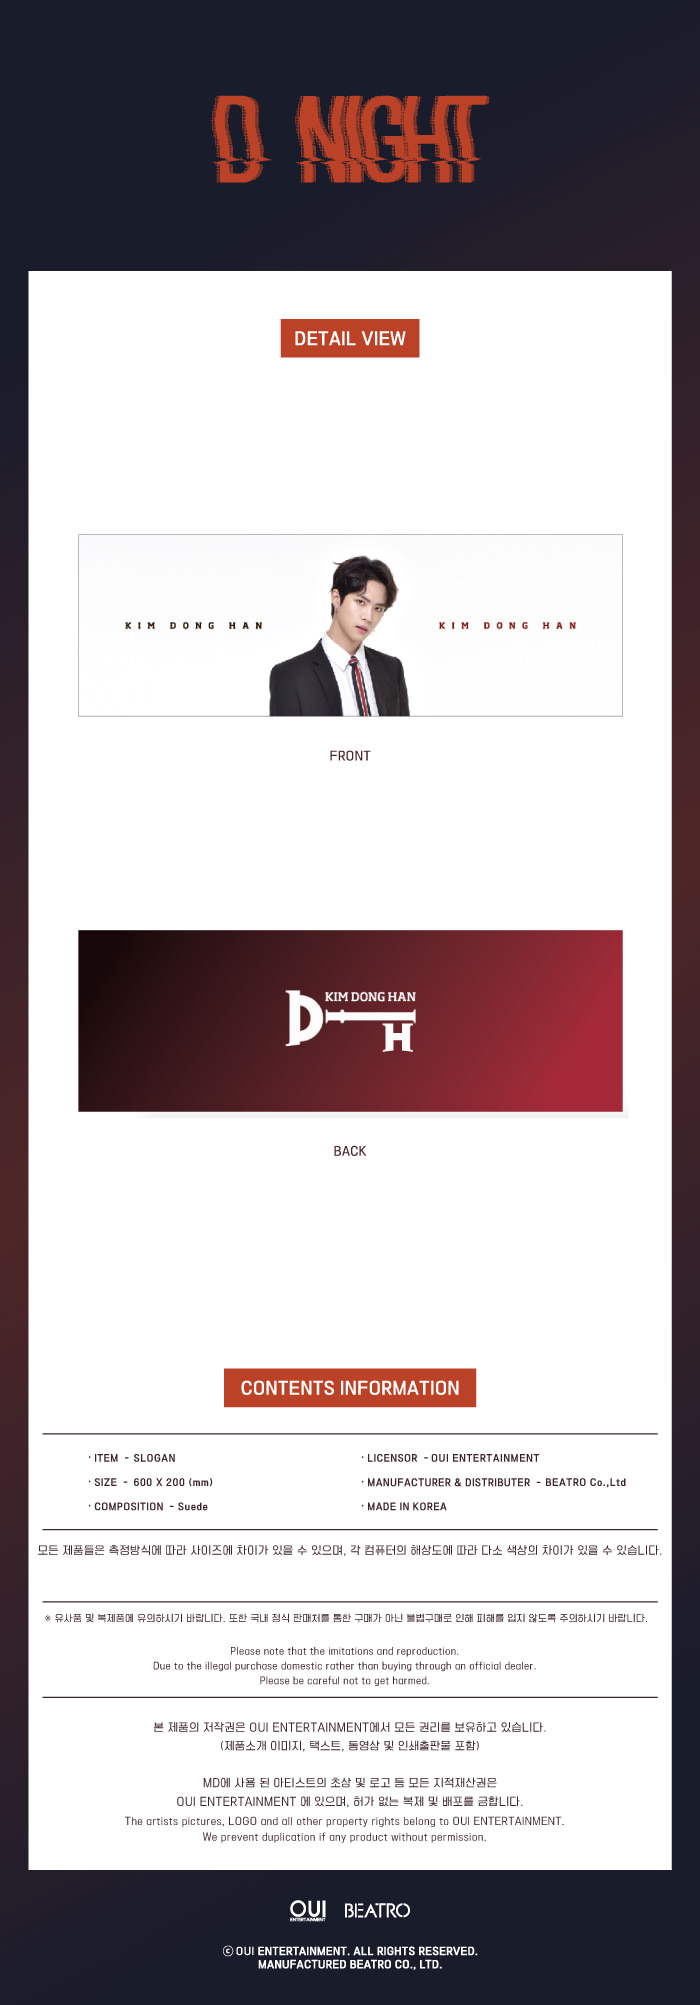 KIM DONGHAN Official Goods - SLOGAN